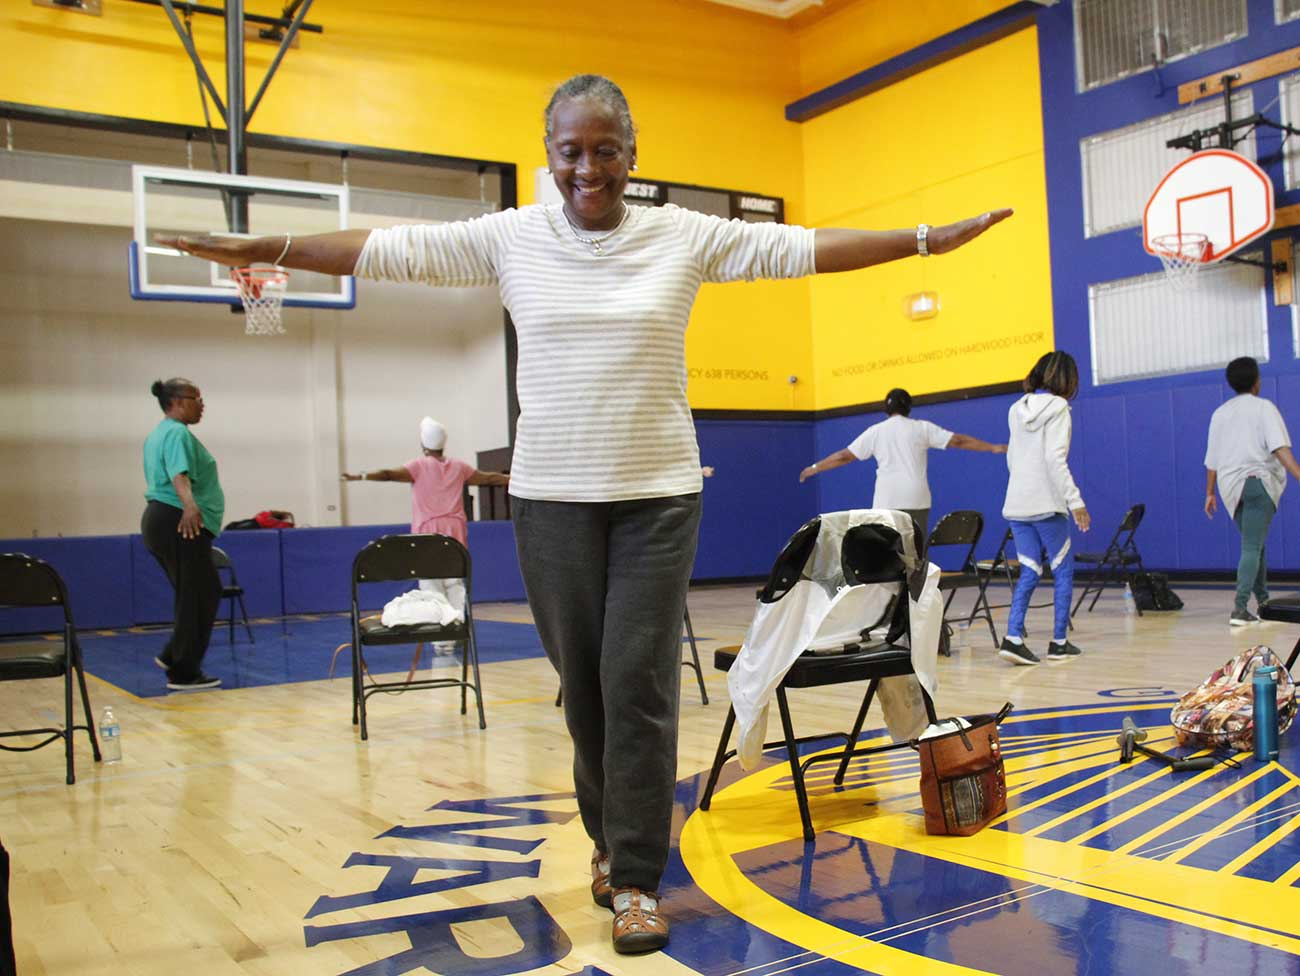 Breast cancer survivor Sandra Domingue does a balance exercise at her local YMCA.